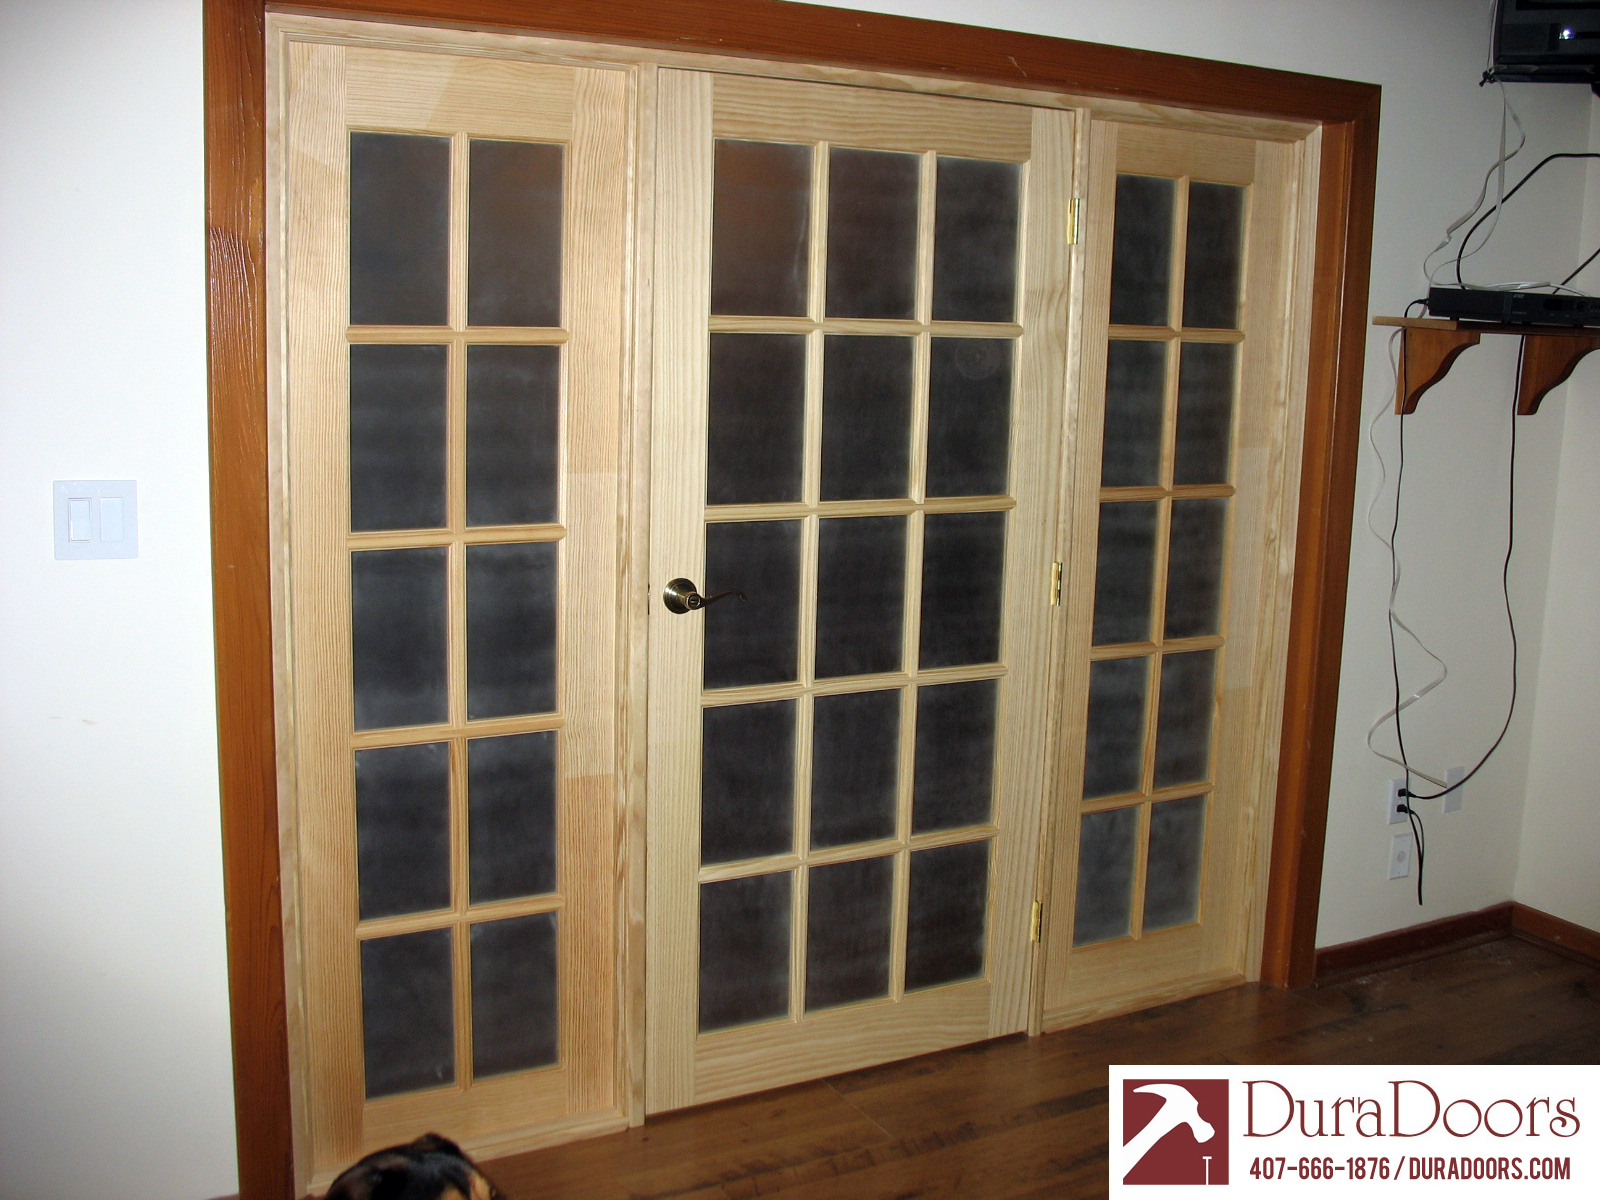 Interior french doors interior french doors - Interiorfrench